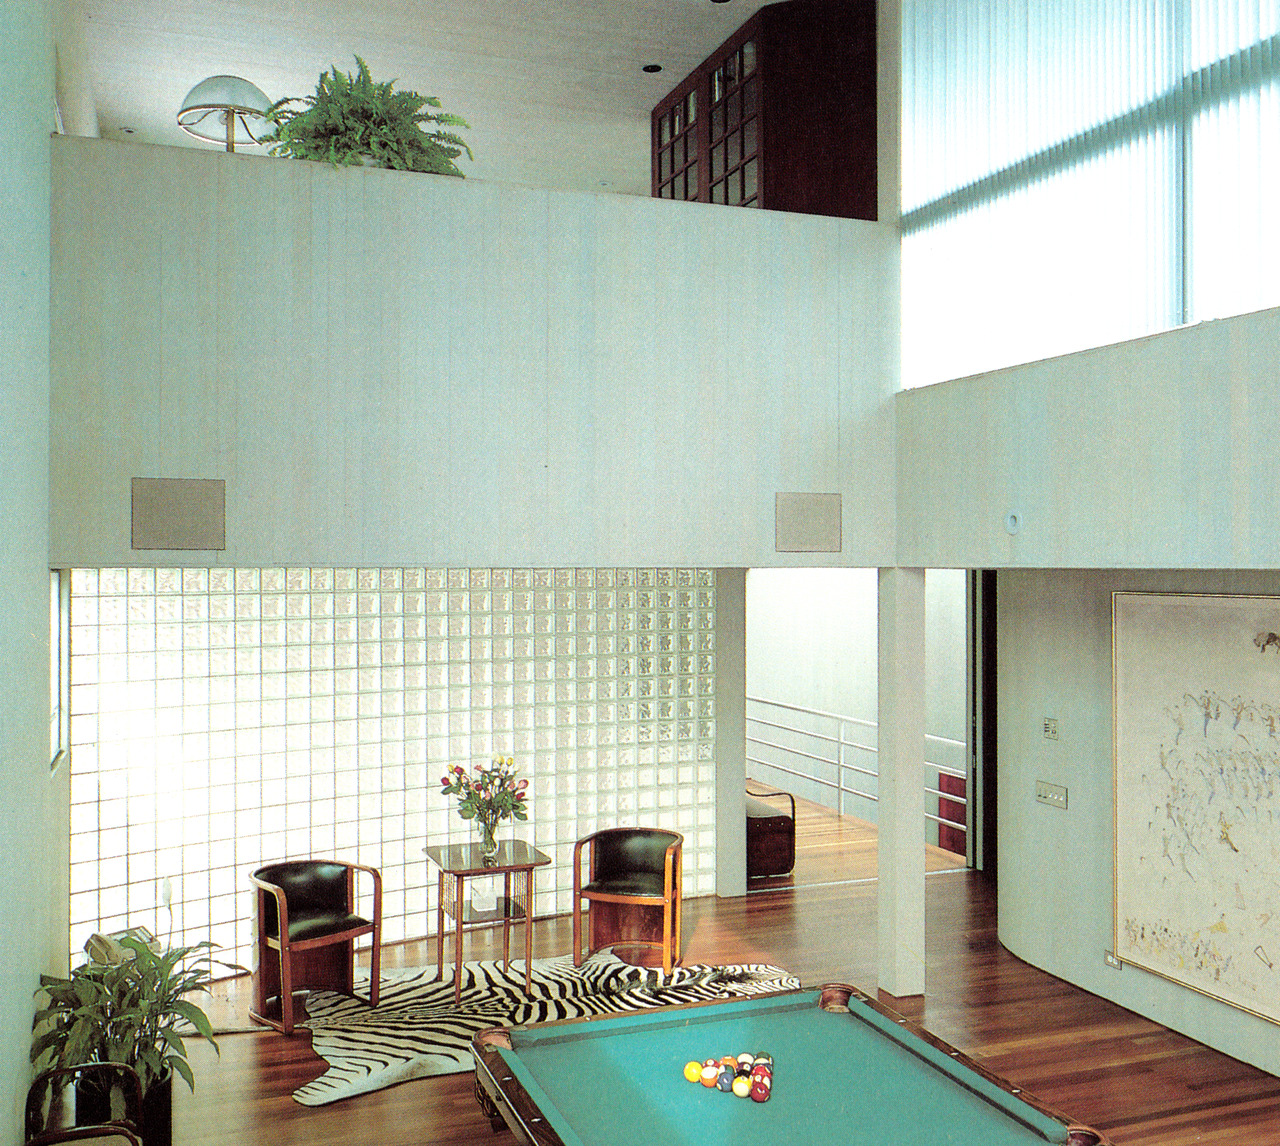 Architecture by Gwathmey Siegel. The Decorating Book, Mary Gilliatt, 1981.jpg